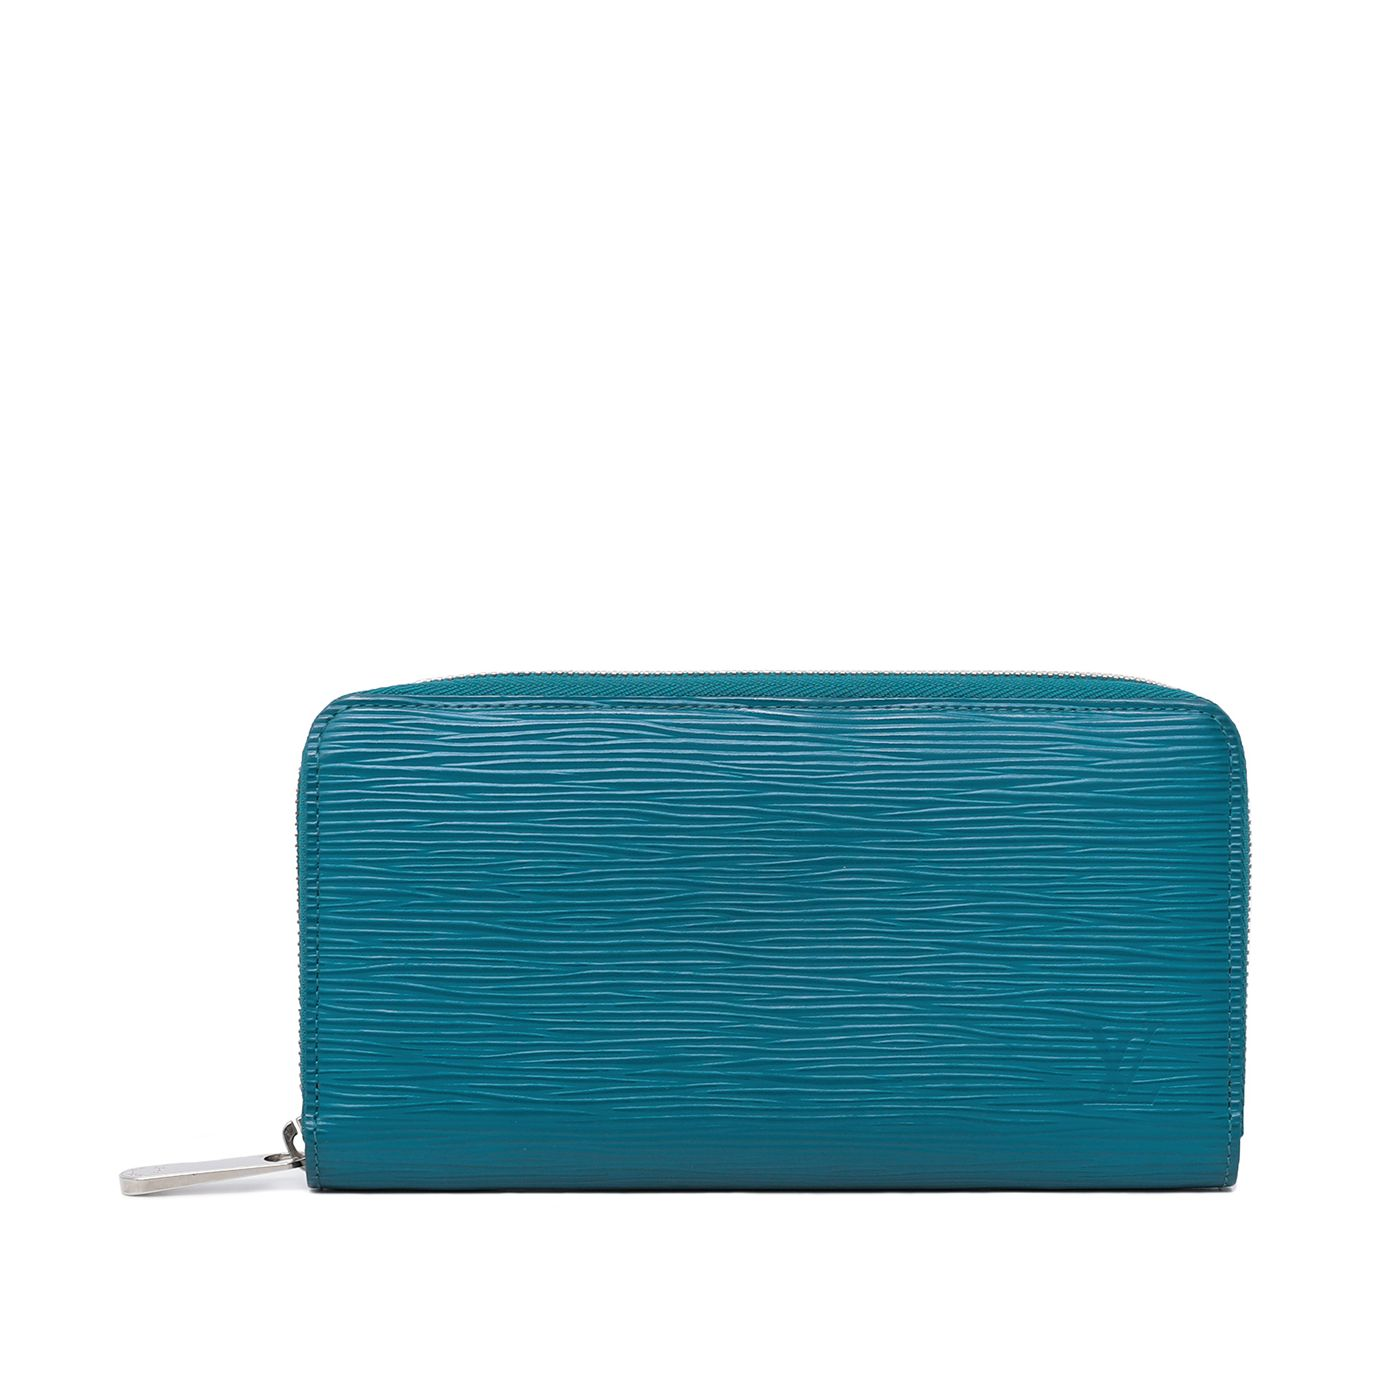 Louis Vuitton Turquoise Long Zippy Wallet